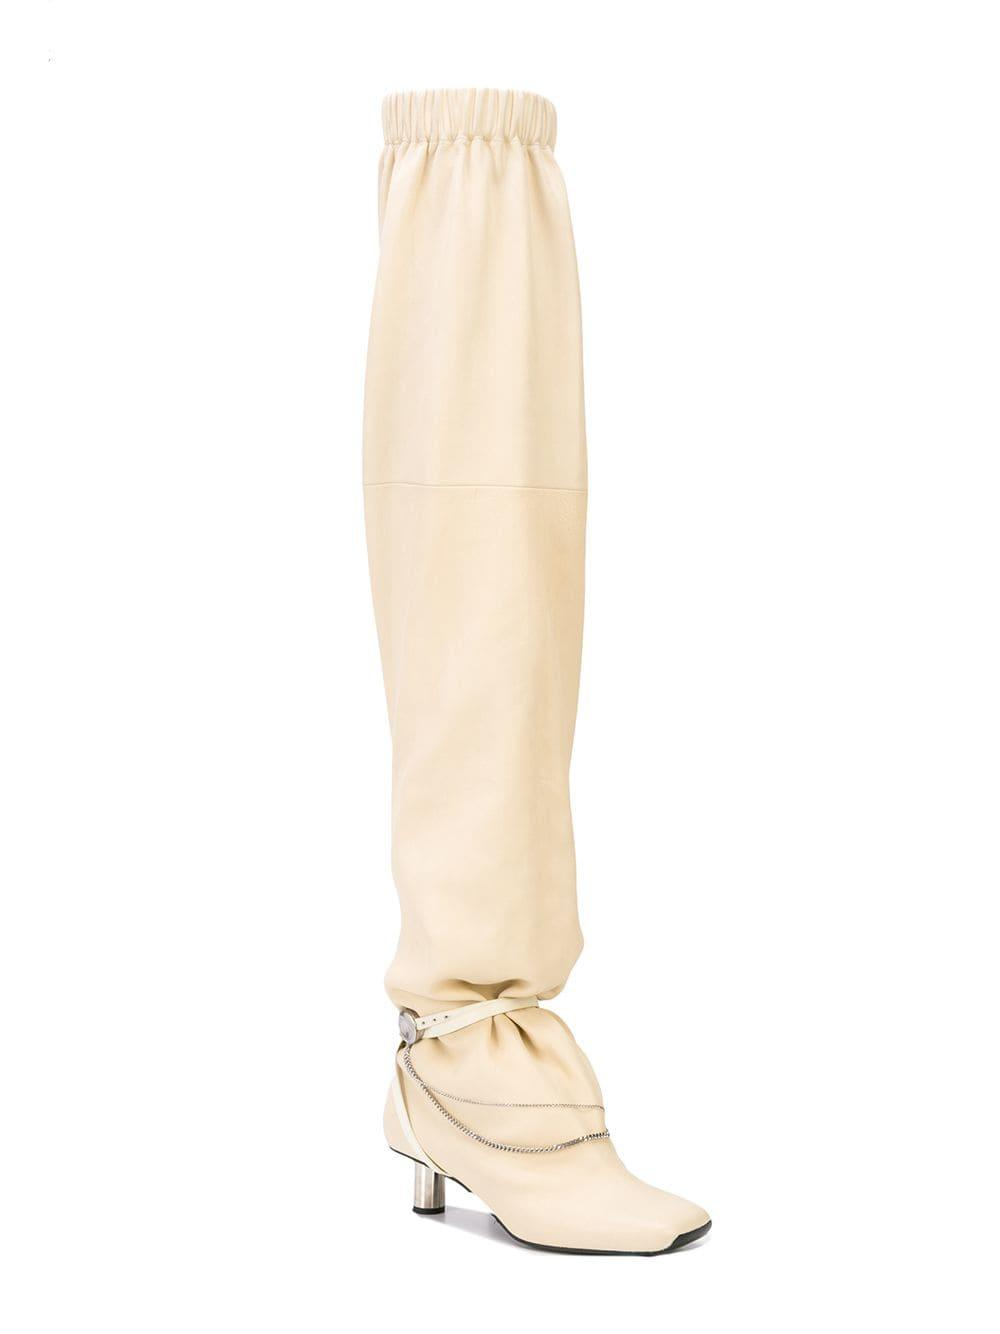 6109d8a72352 Lyst - Proenza Schouler Pre-order  Over The Knee Slouch Boots in White